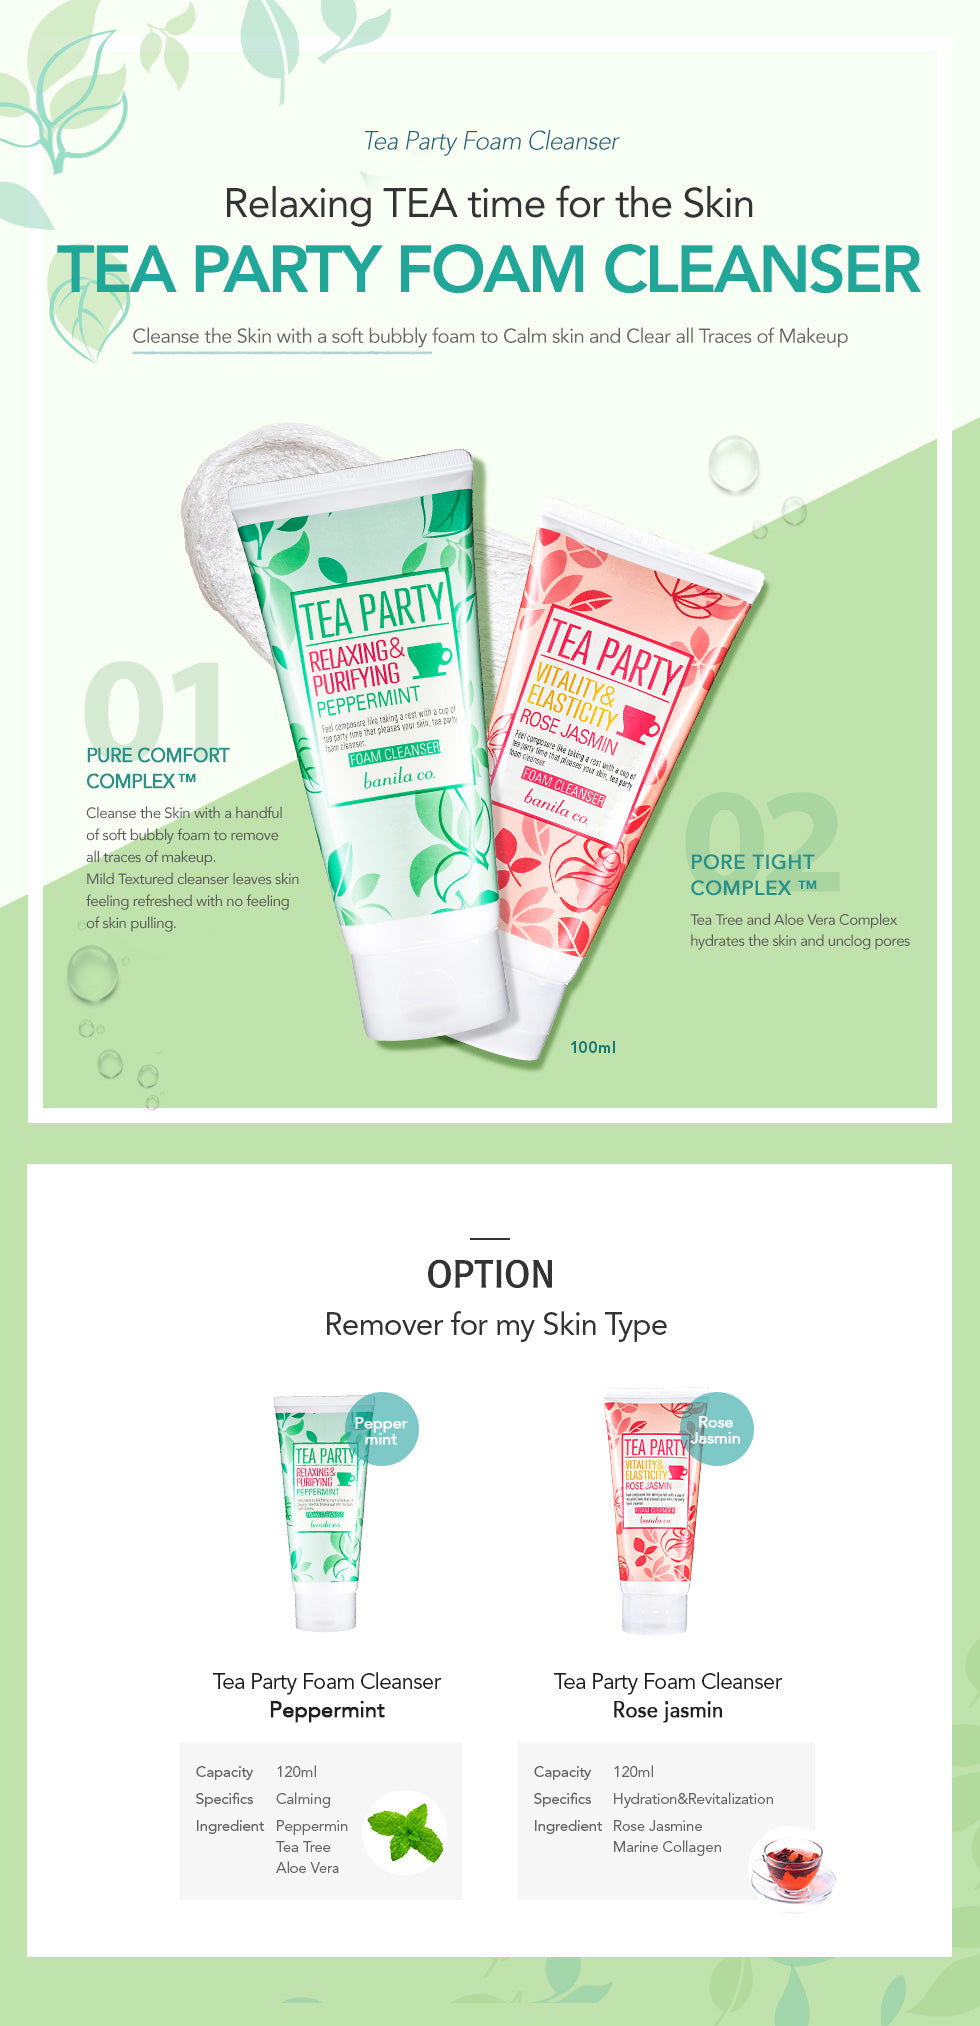 Banila Co - Tea Party Relaxing & Purifying Foam Cleanser